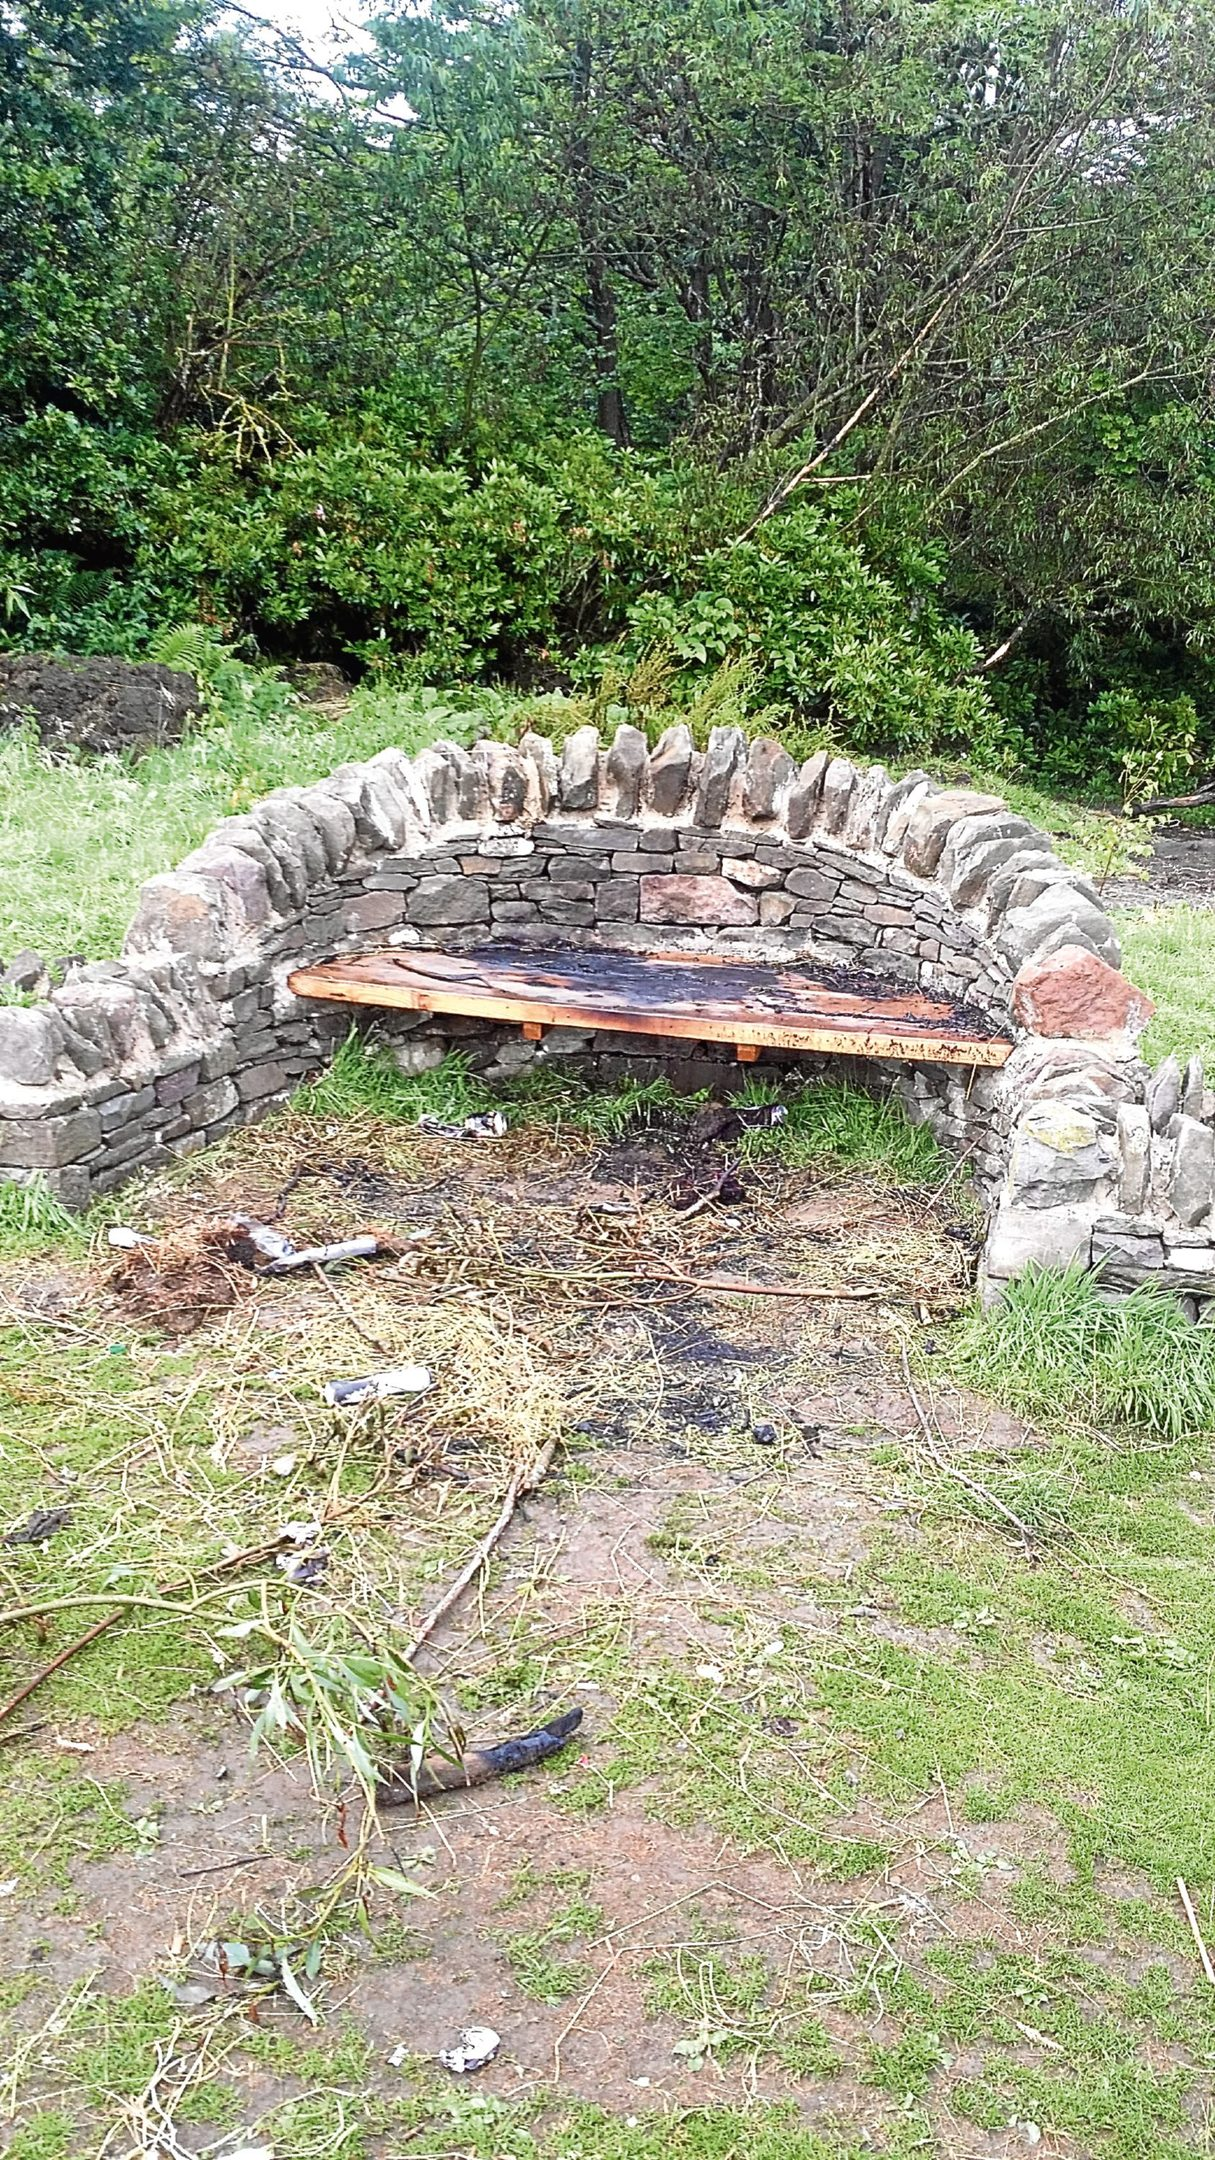 The vandalised bower seat in Kirkcaldy's Dunnikier Park.